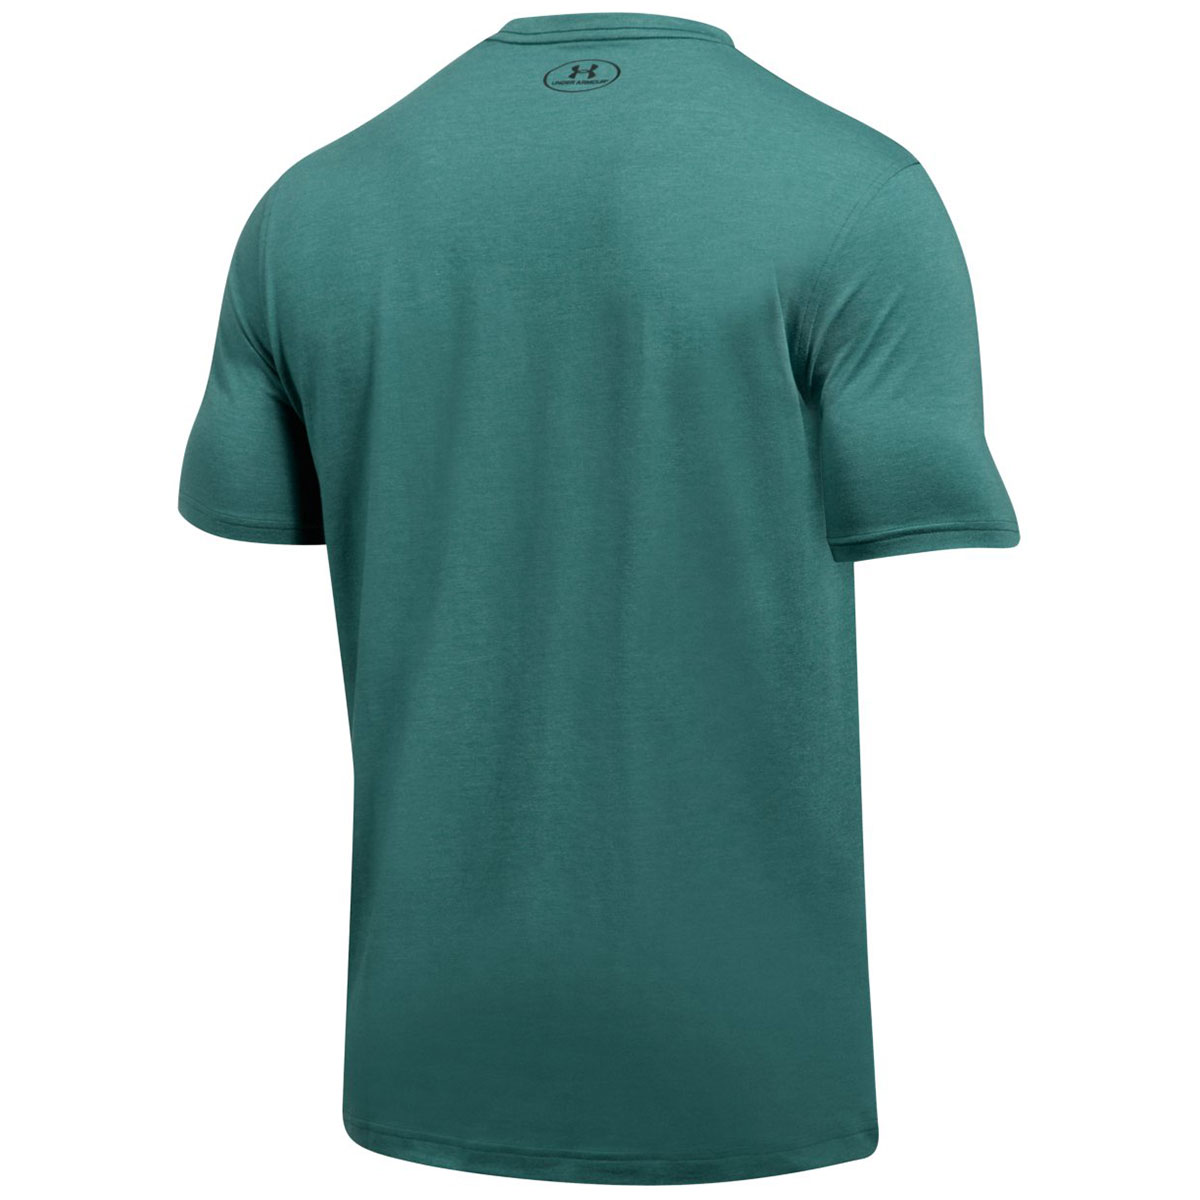 Under-Armour-Mens-Charged-Cotton-Left-Chest-Lockup-T-Shirt-UA-Gym-Training thumbnail 3